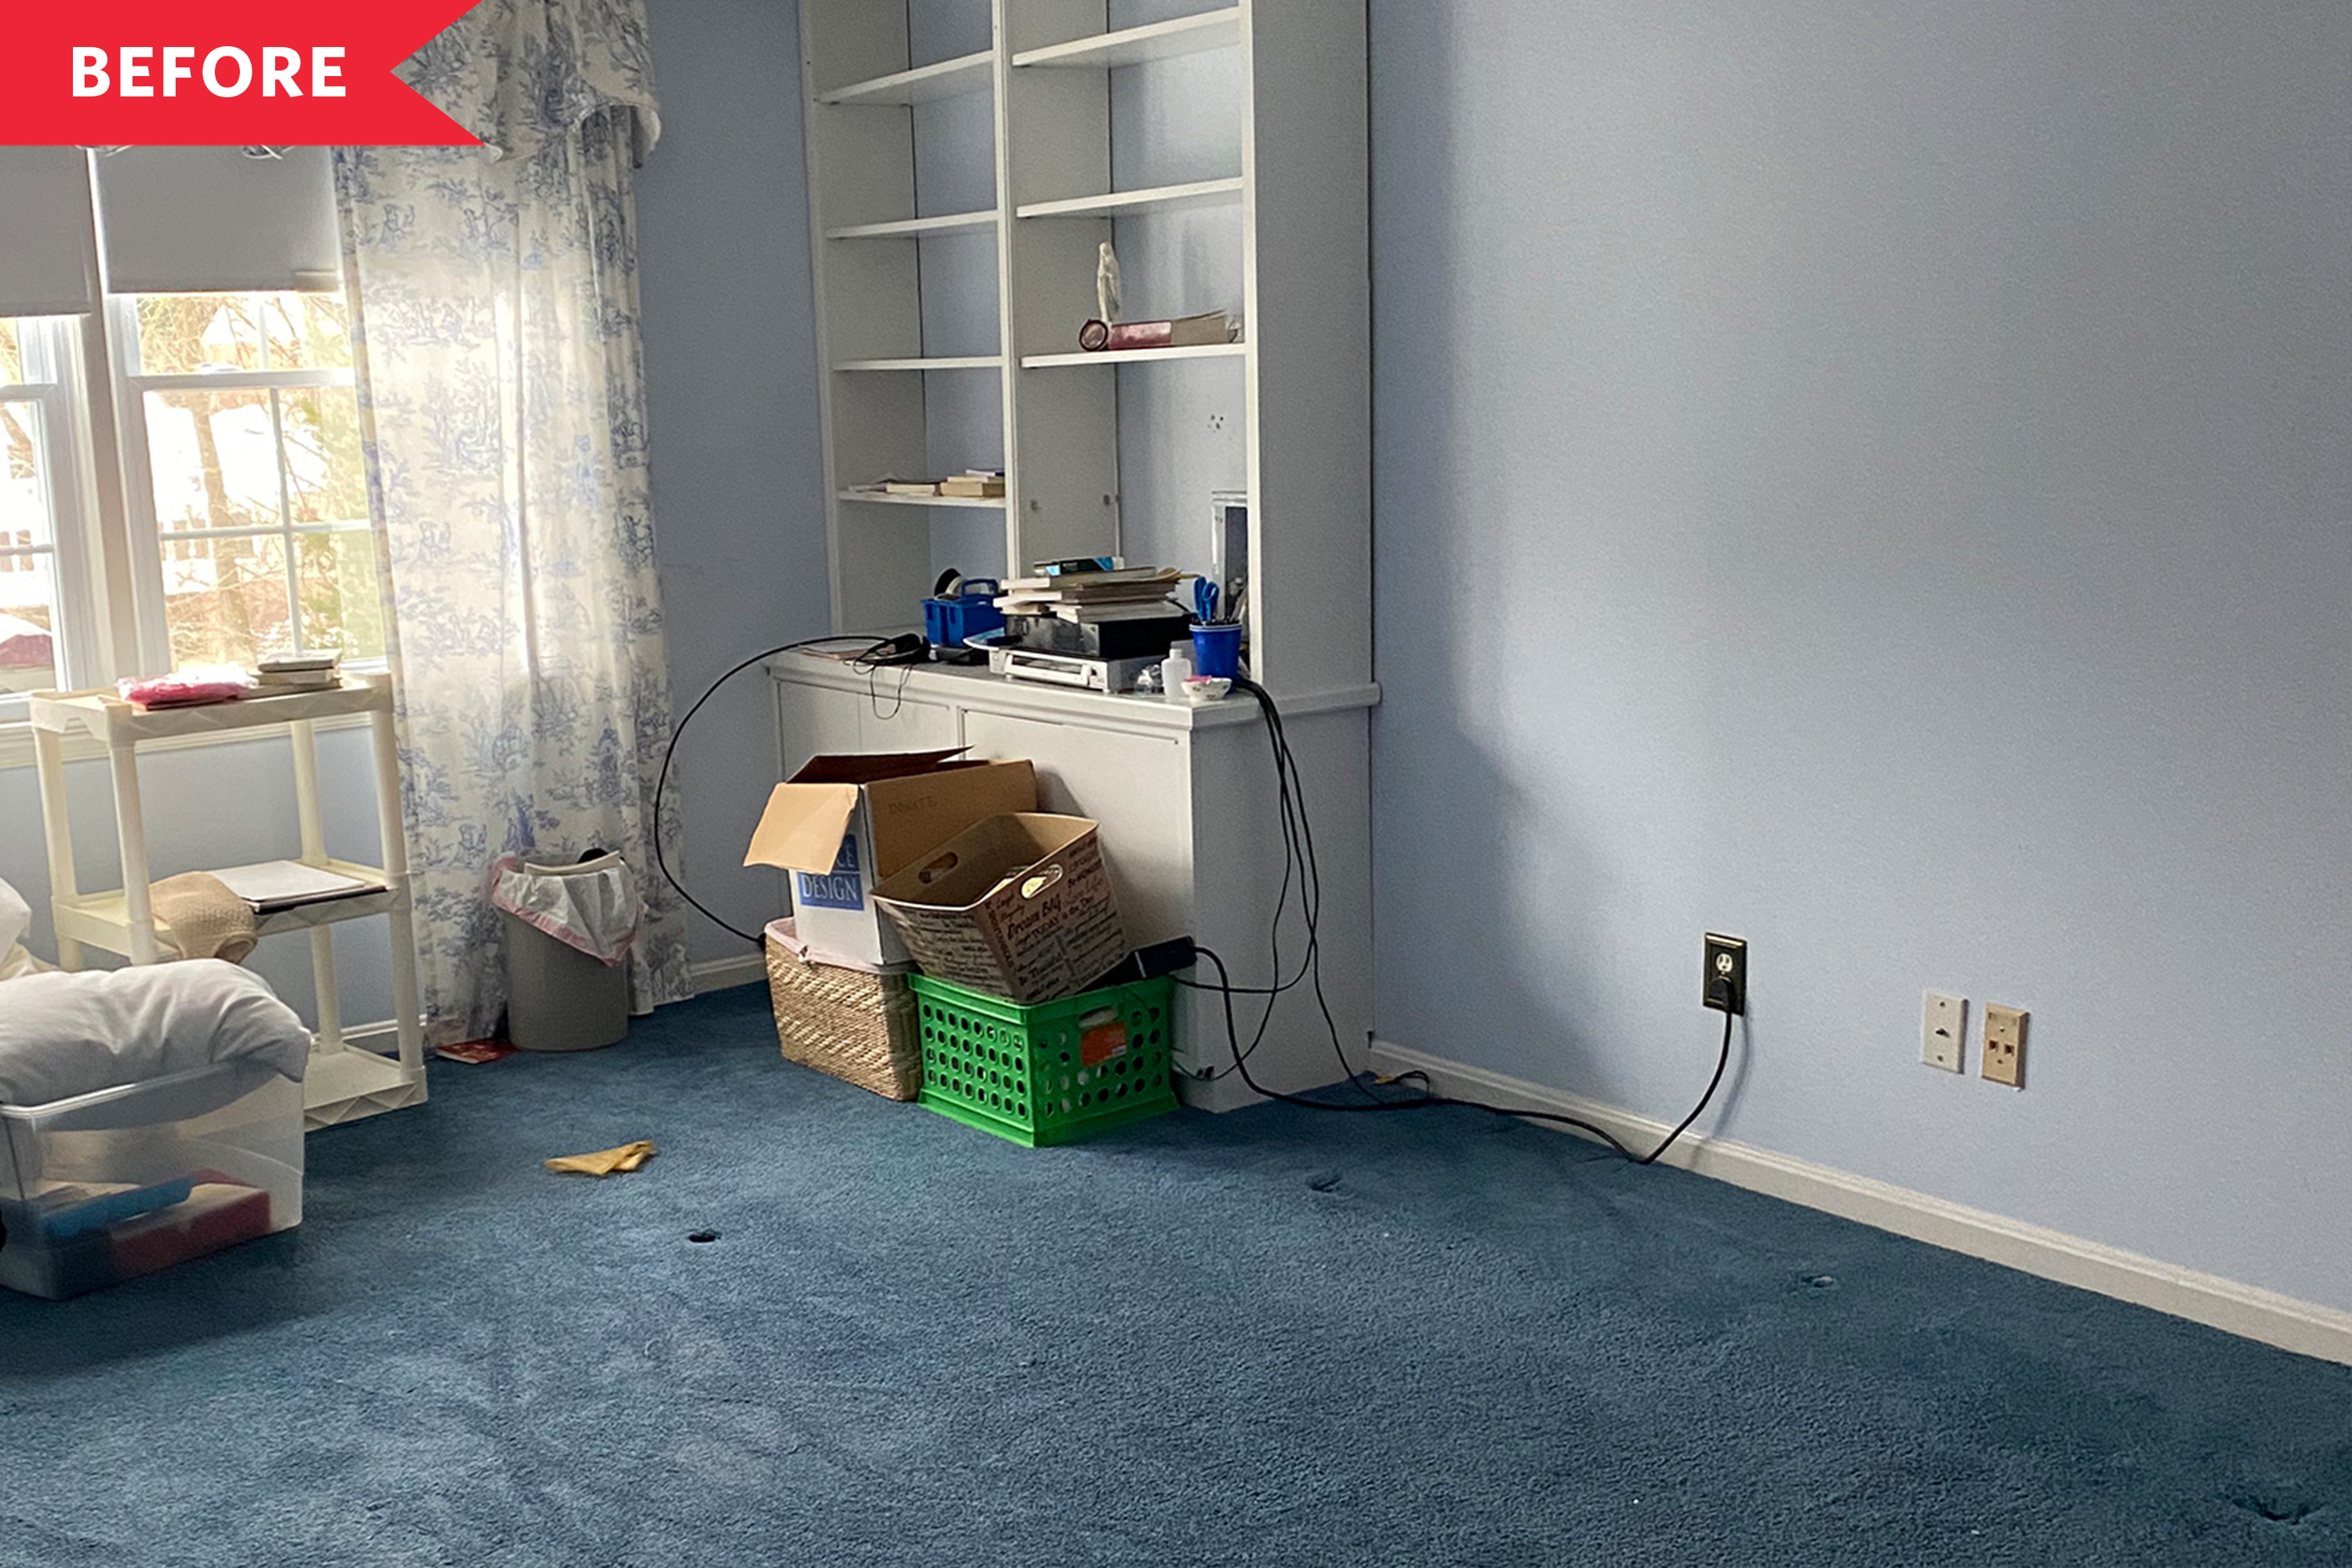 Before and After: A Dated, Carpeted Bedroom Gets a Magical Transformation